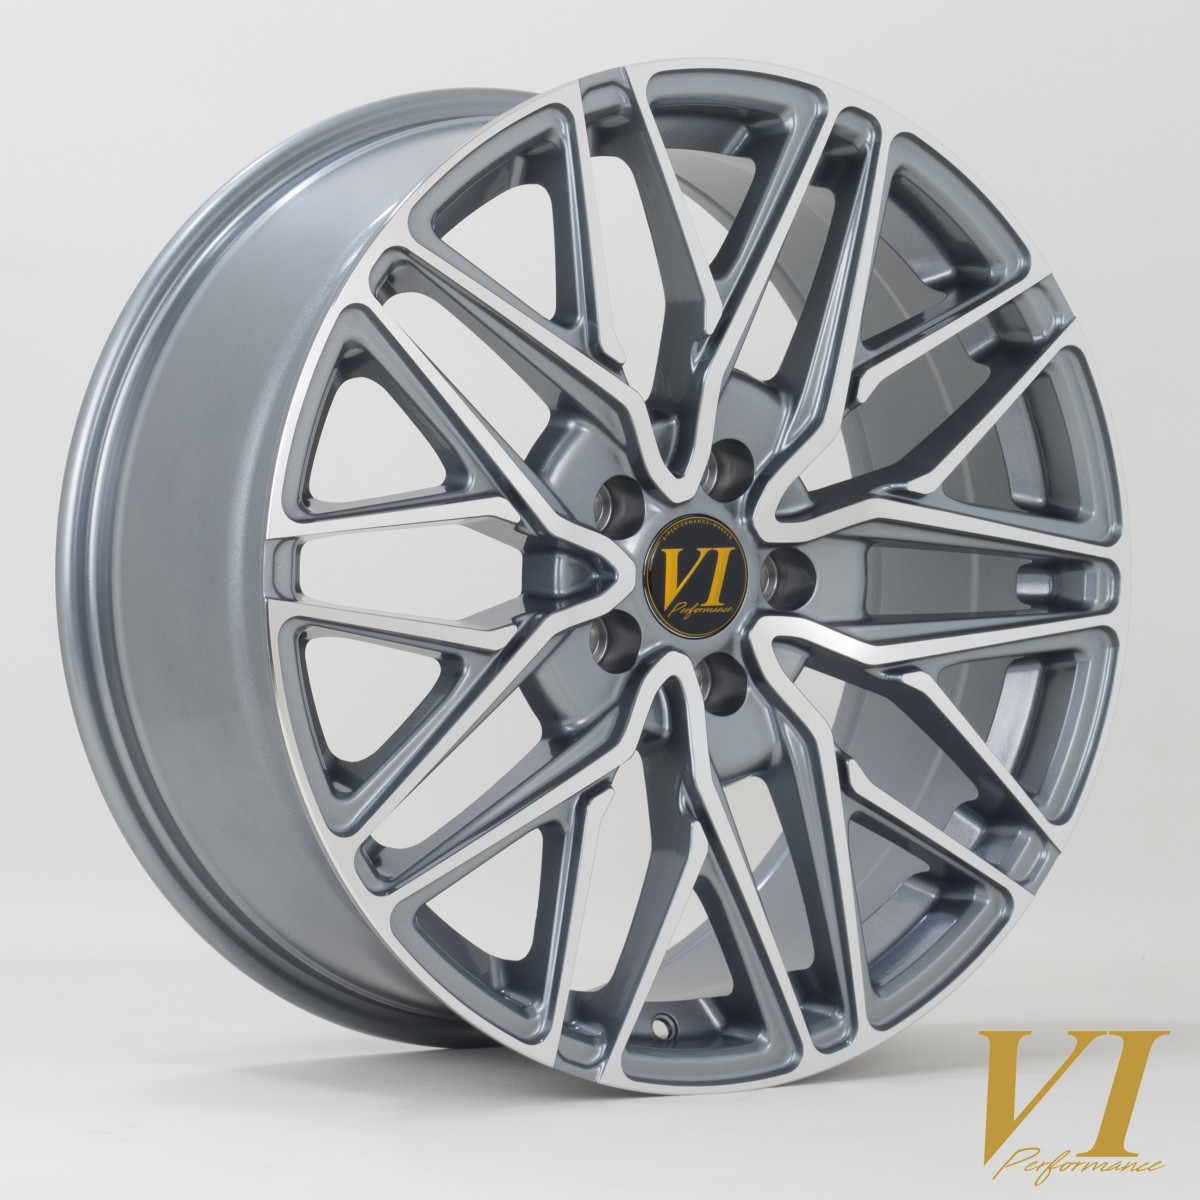 6Performance Loaded 20x8.5 5x120 ET35 Gunmetal with a Polished Face